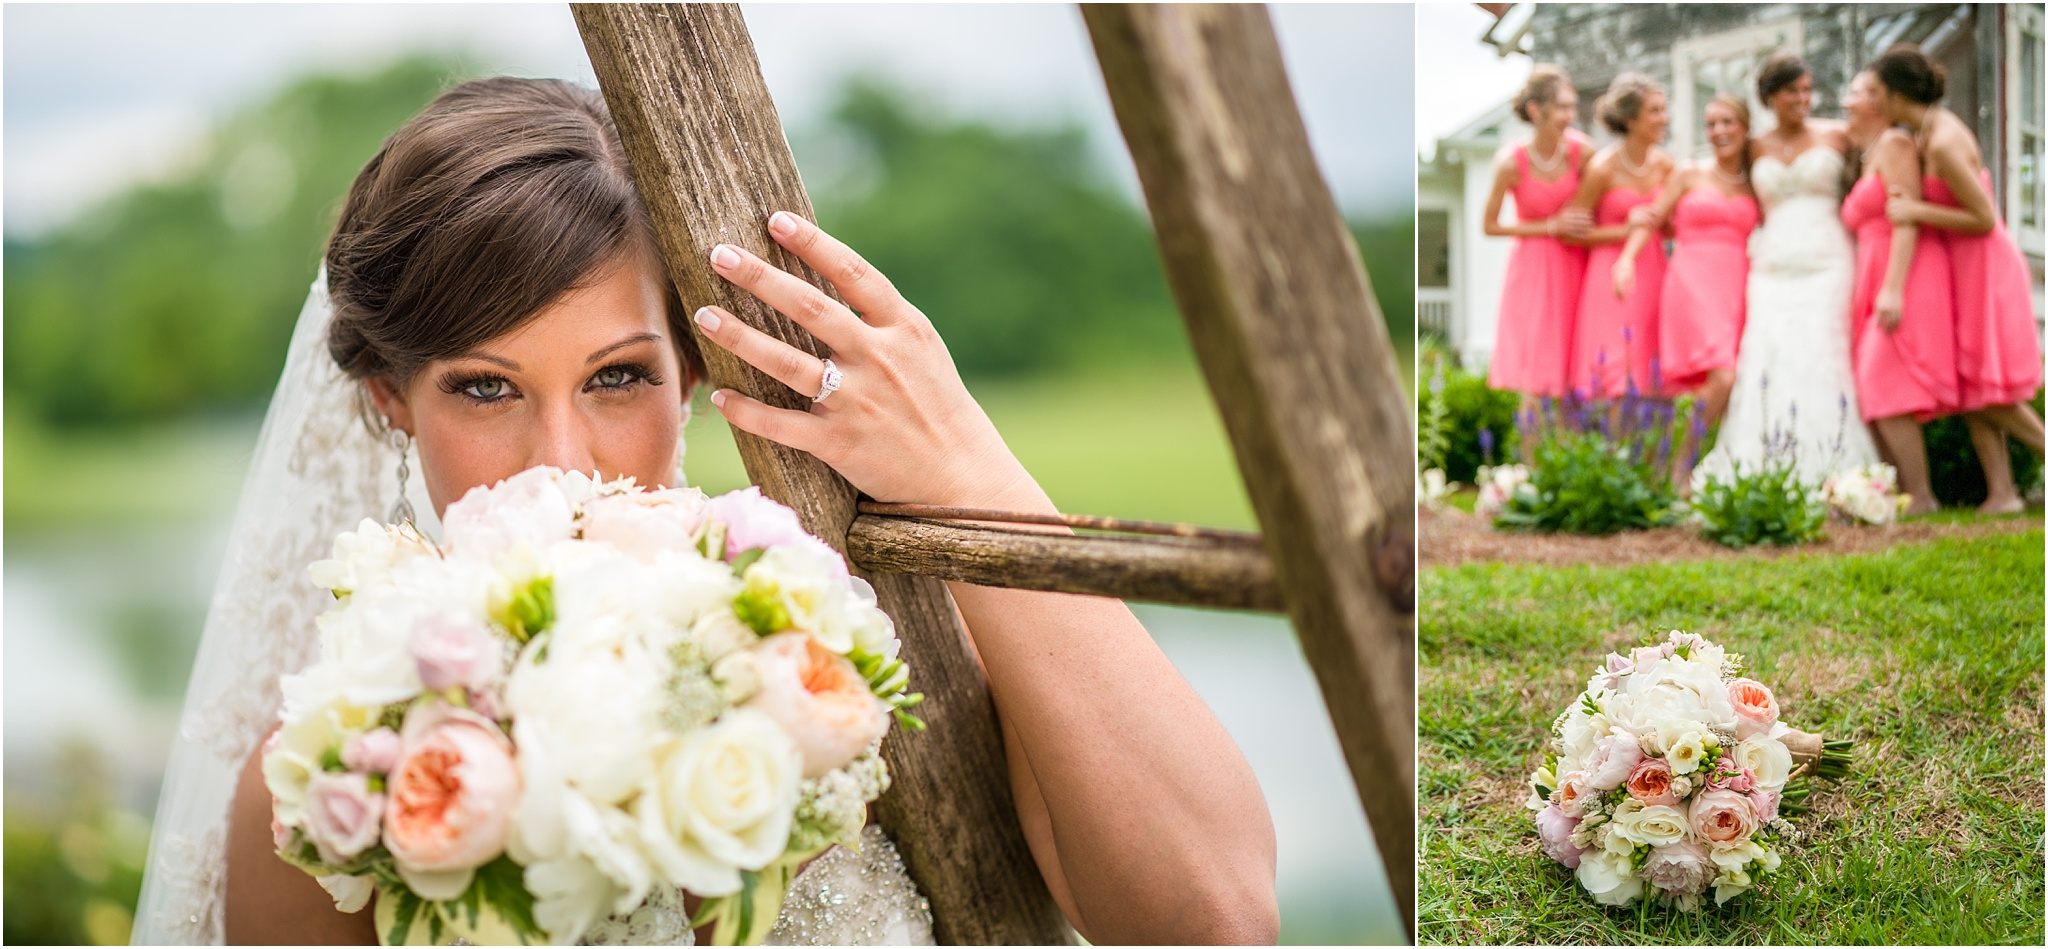 Greg Smit Photography Nashville wedding photographer Mint Springs Farm  8